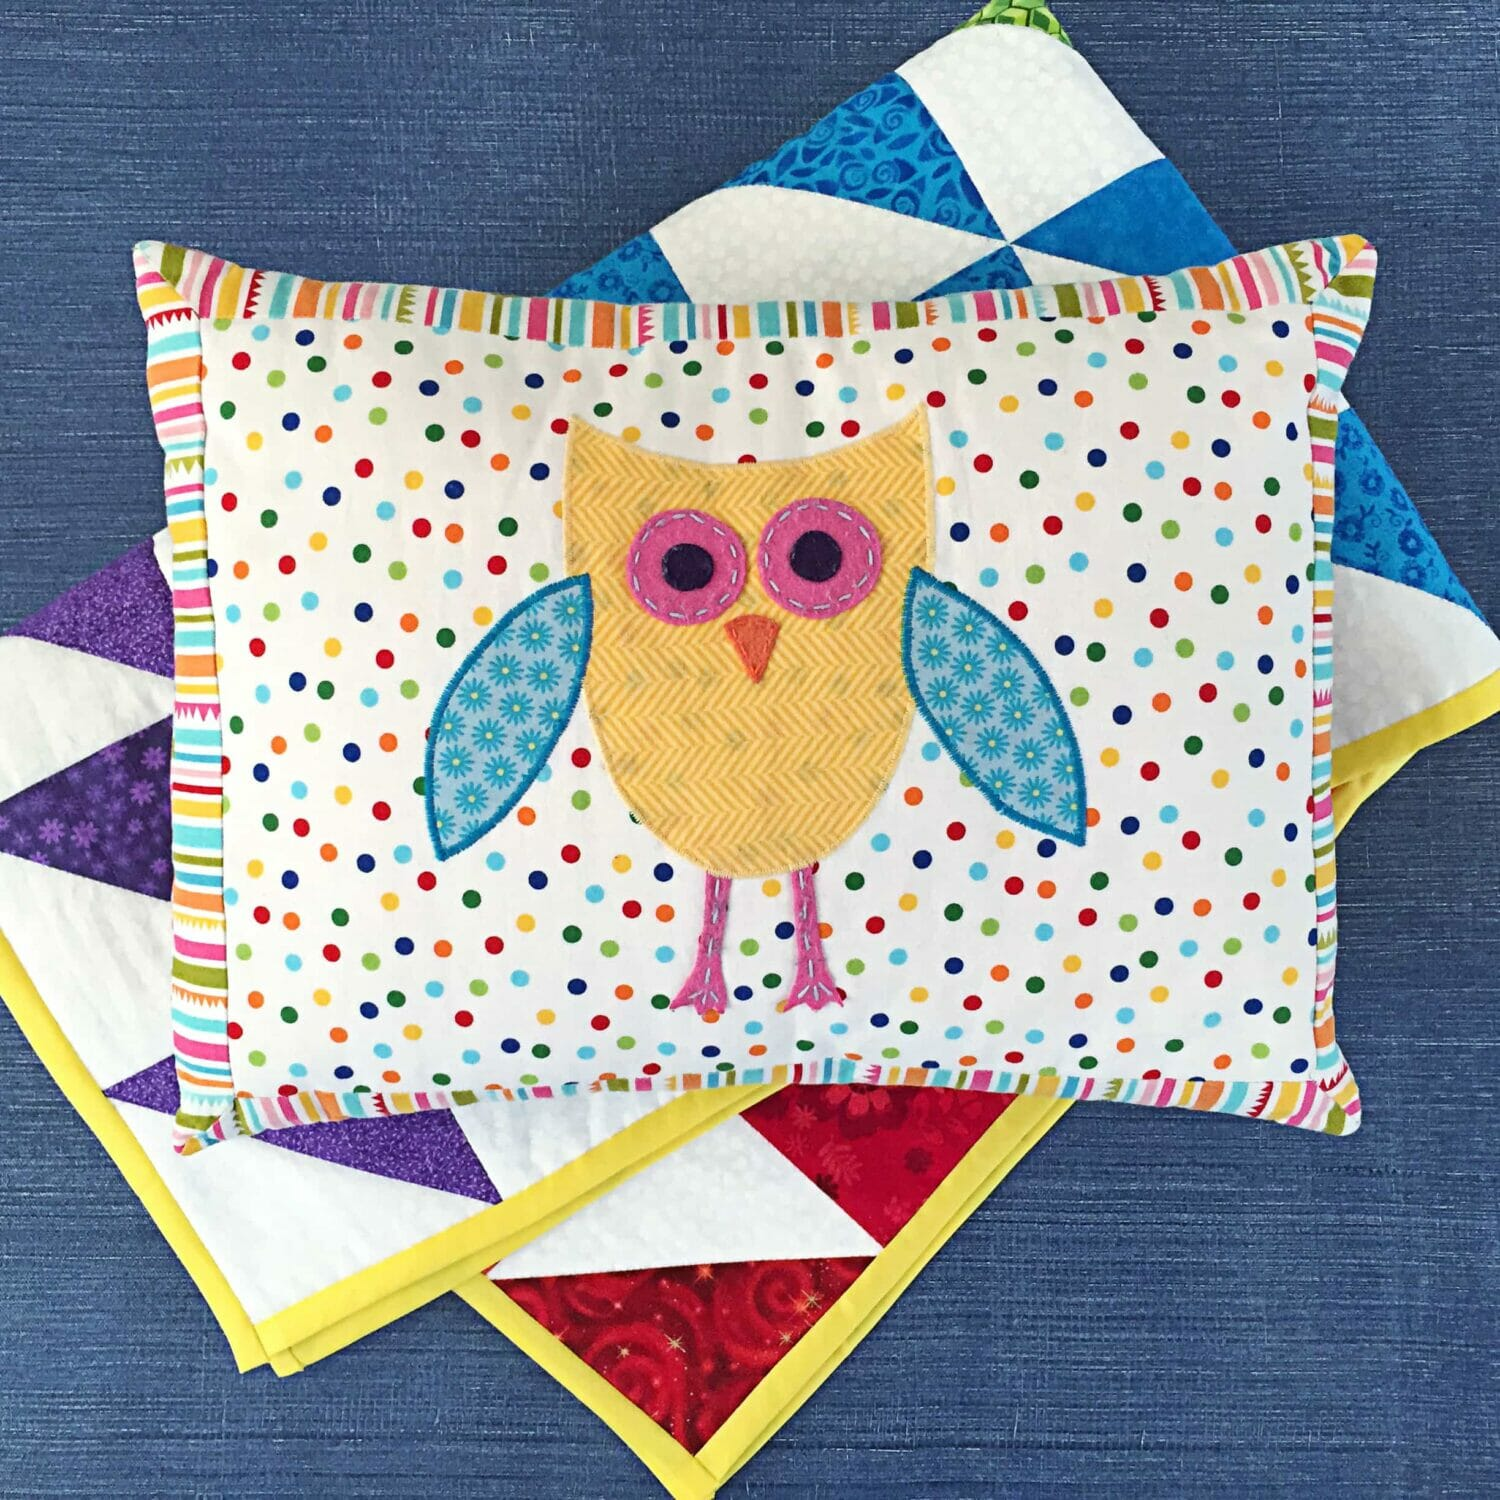 Polka dot owl pillow laying on top of a rainbow quilt and blue background.